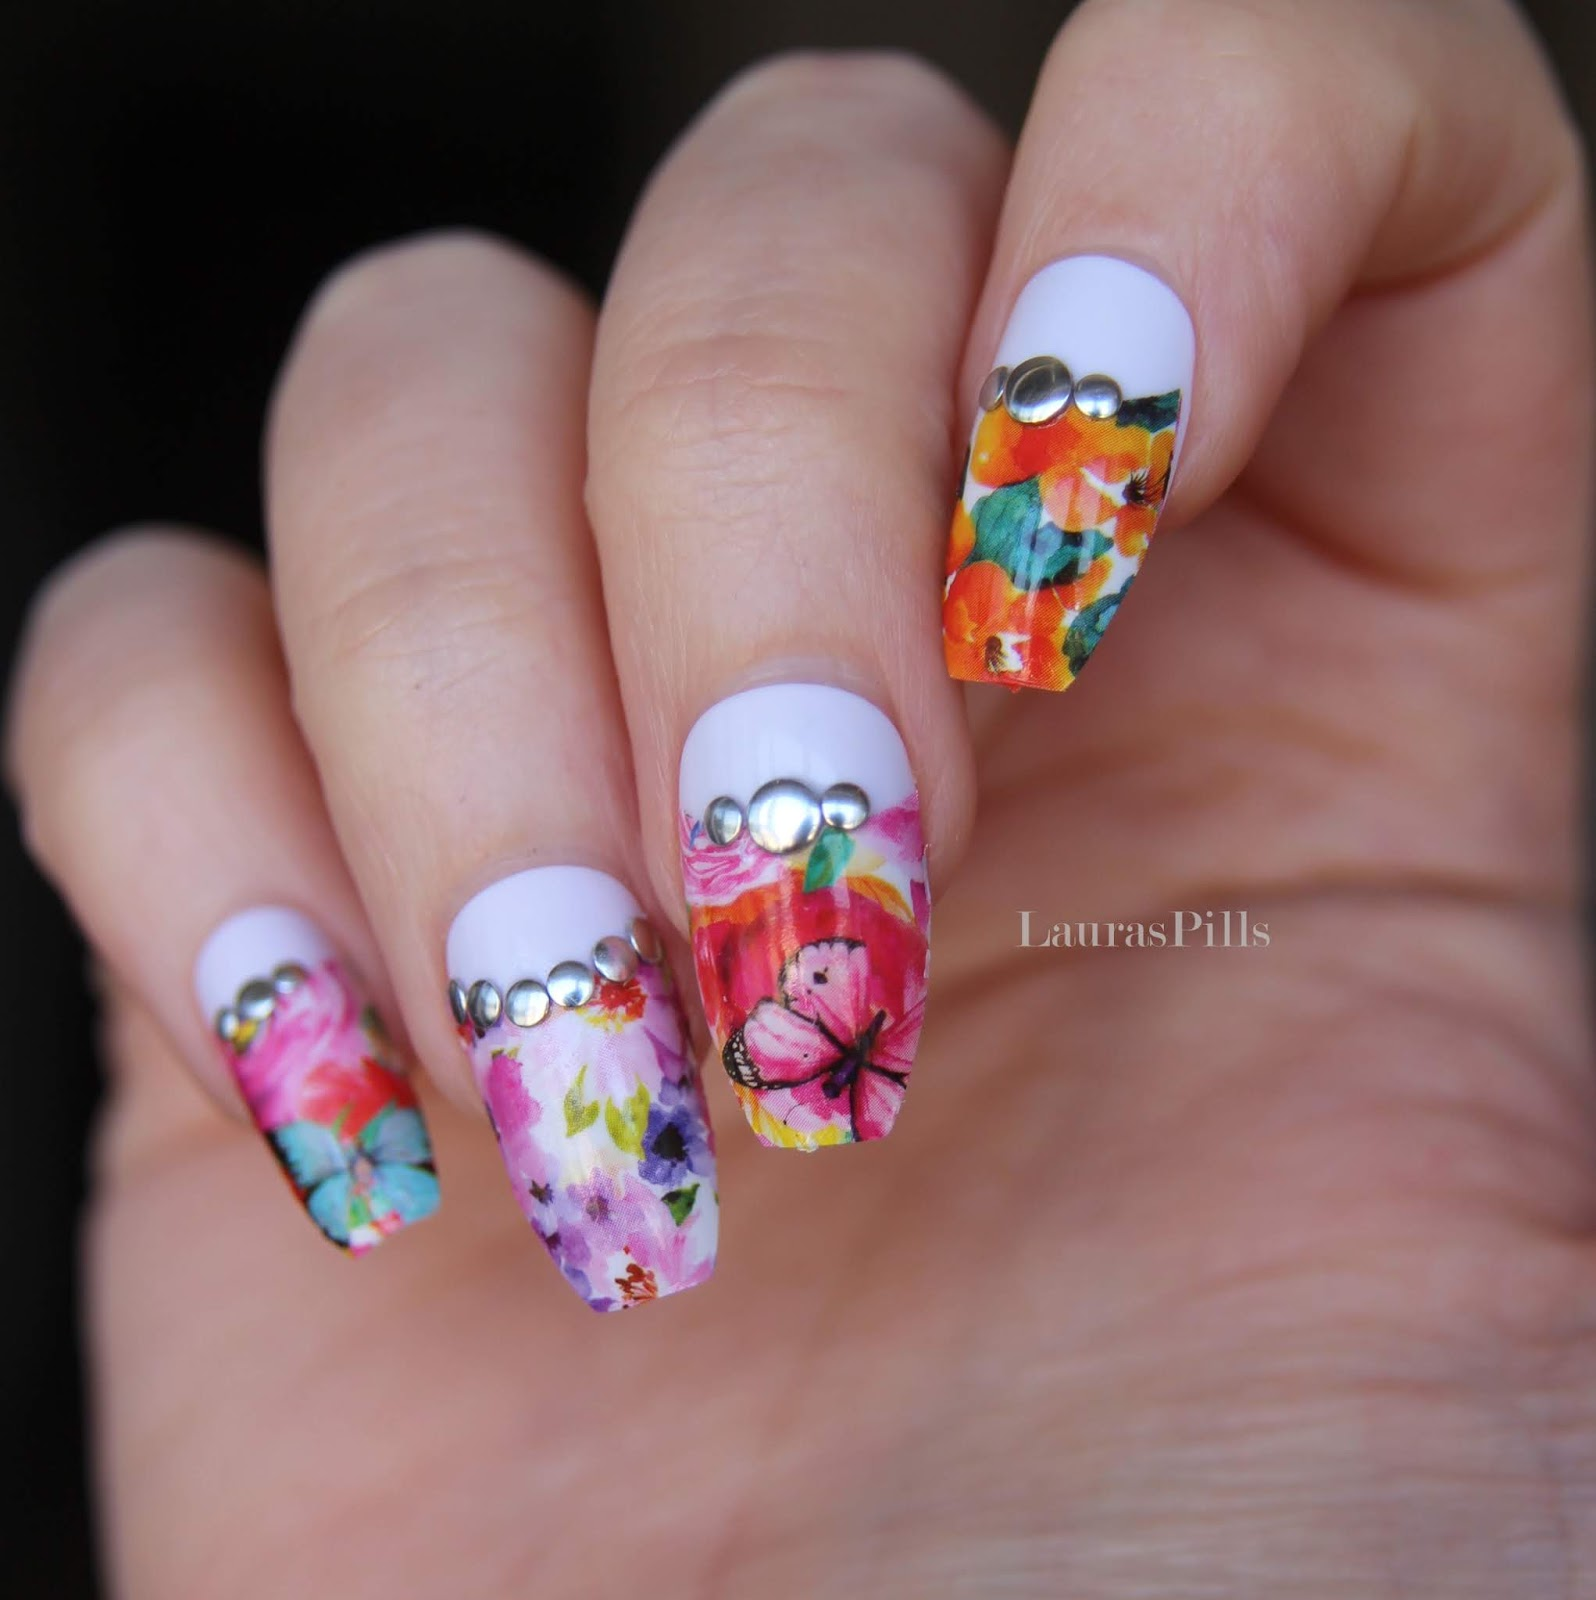 Lauras Pills Half Moon Spring Nail Art Water Decals From Born